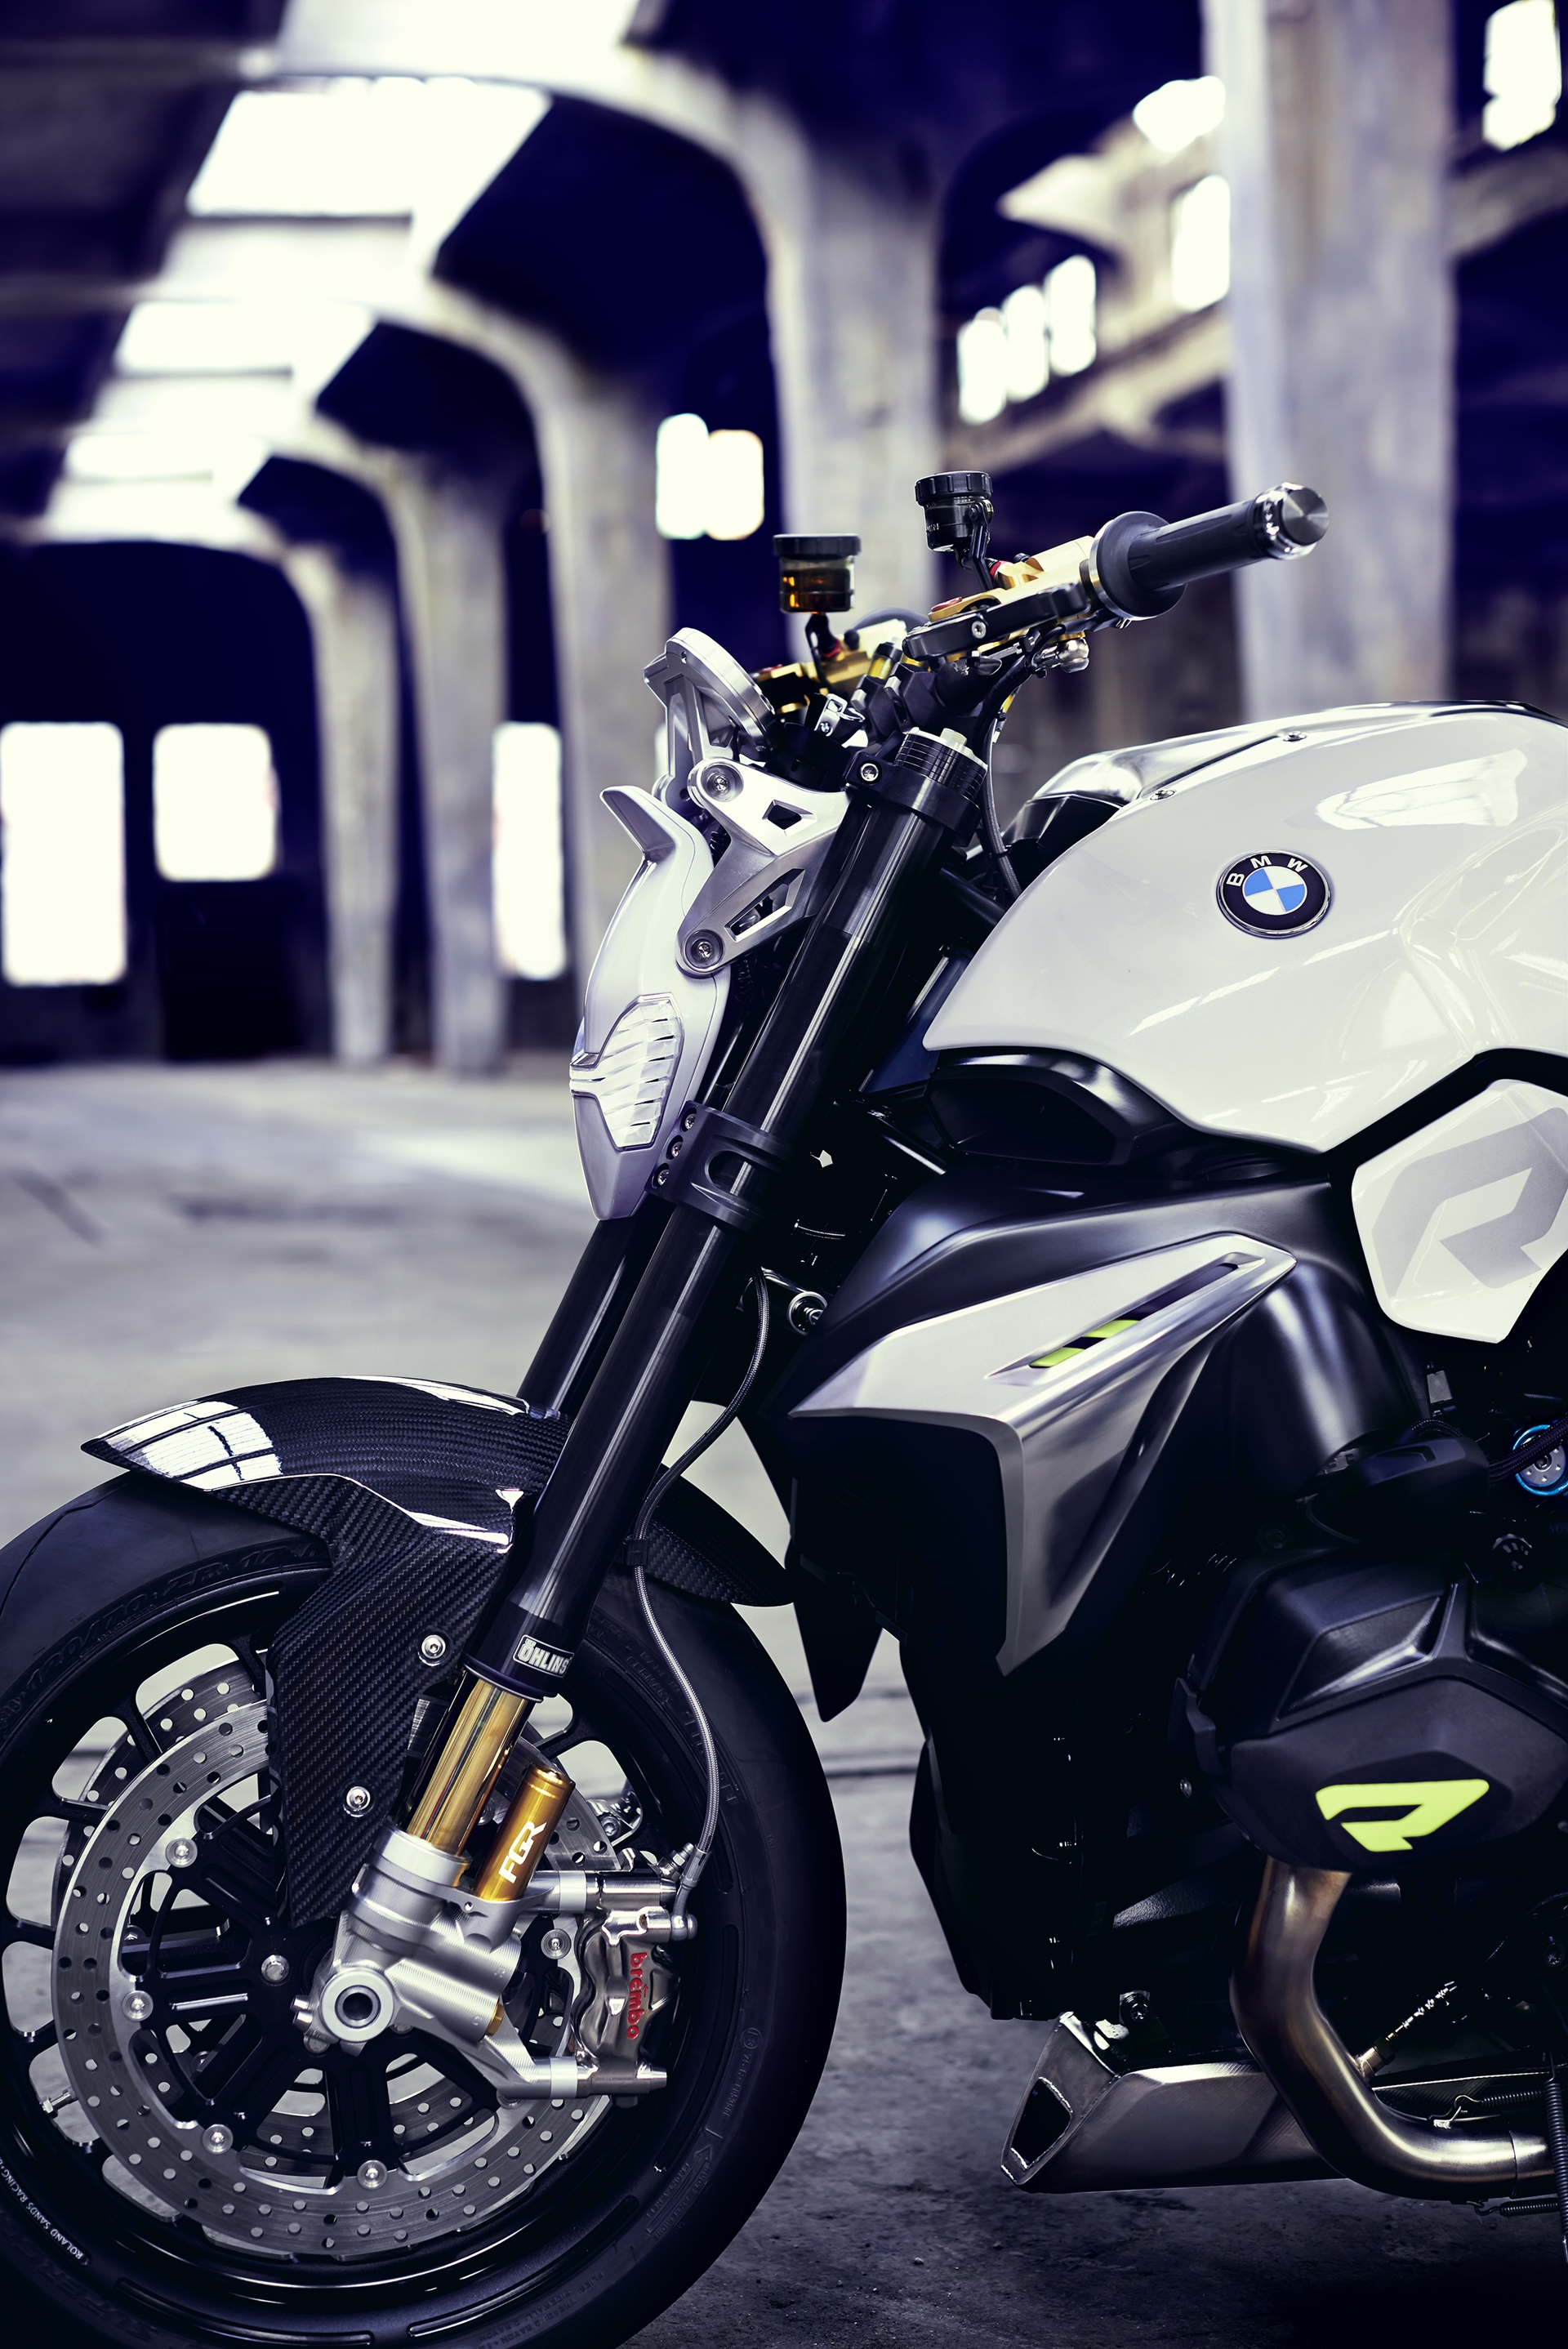 BMW-Motorcycle-Roadster-07